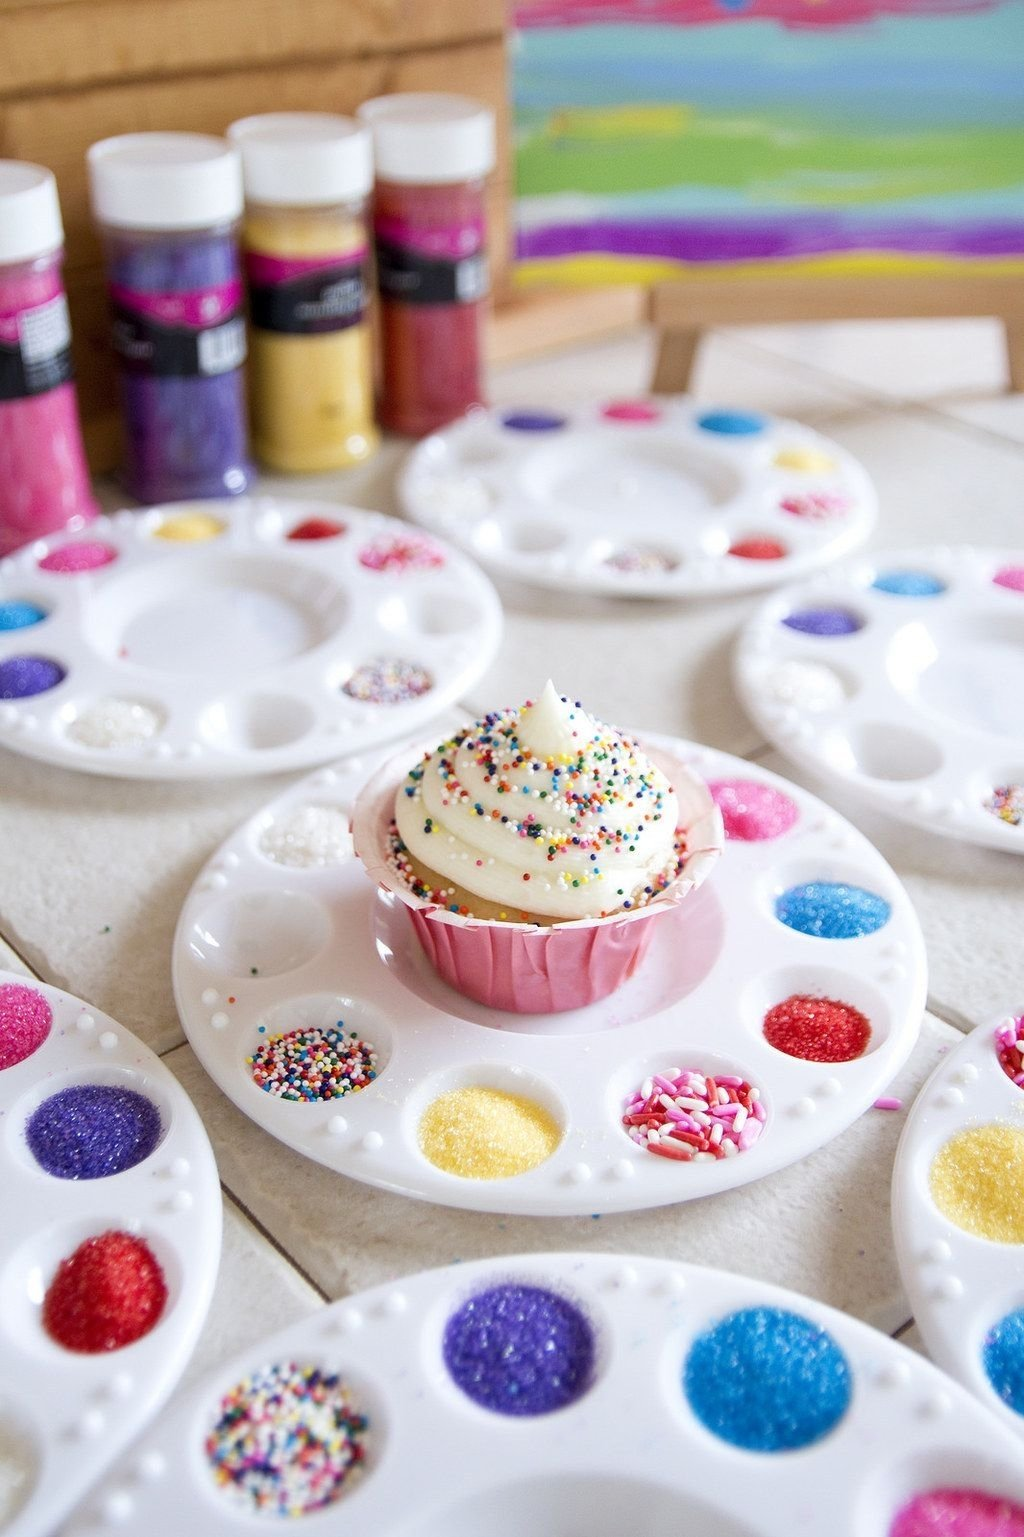 10 Wonderful Birthday Party Ideas For Little Girls cupcake decorating sparkle pony girls dream and pony 2 2020